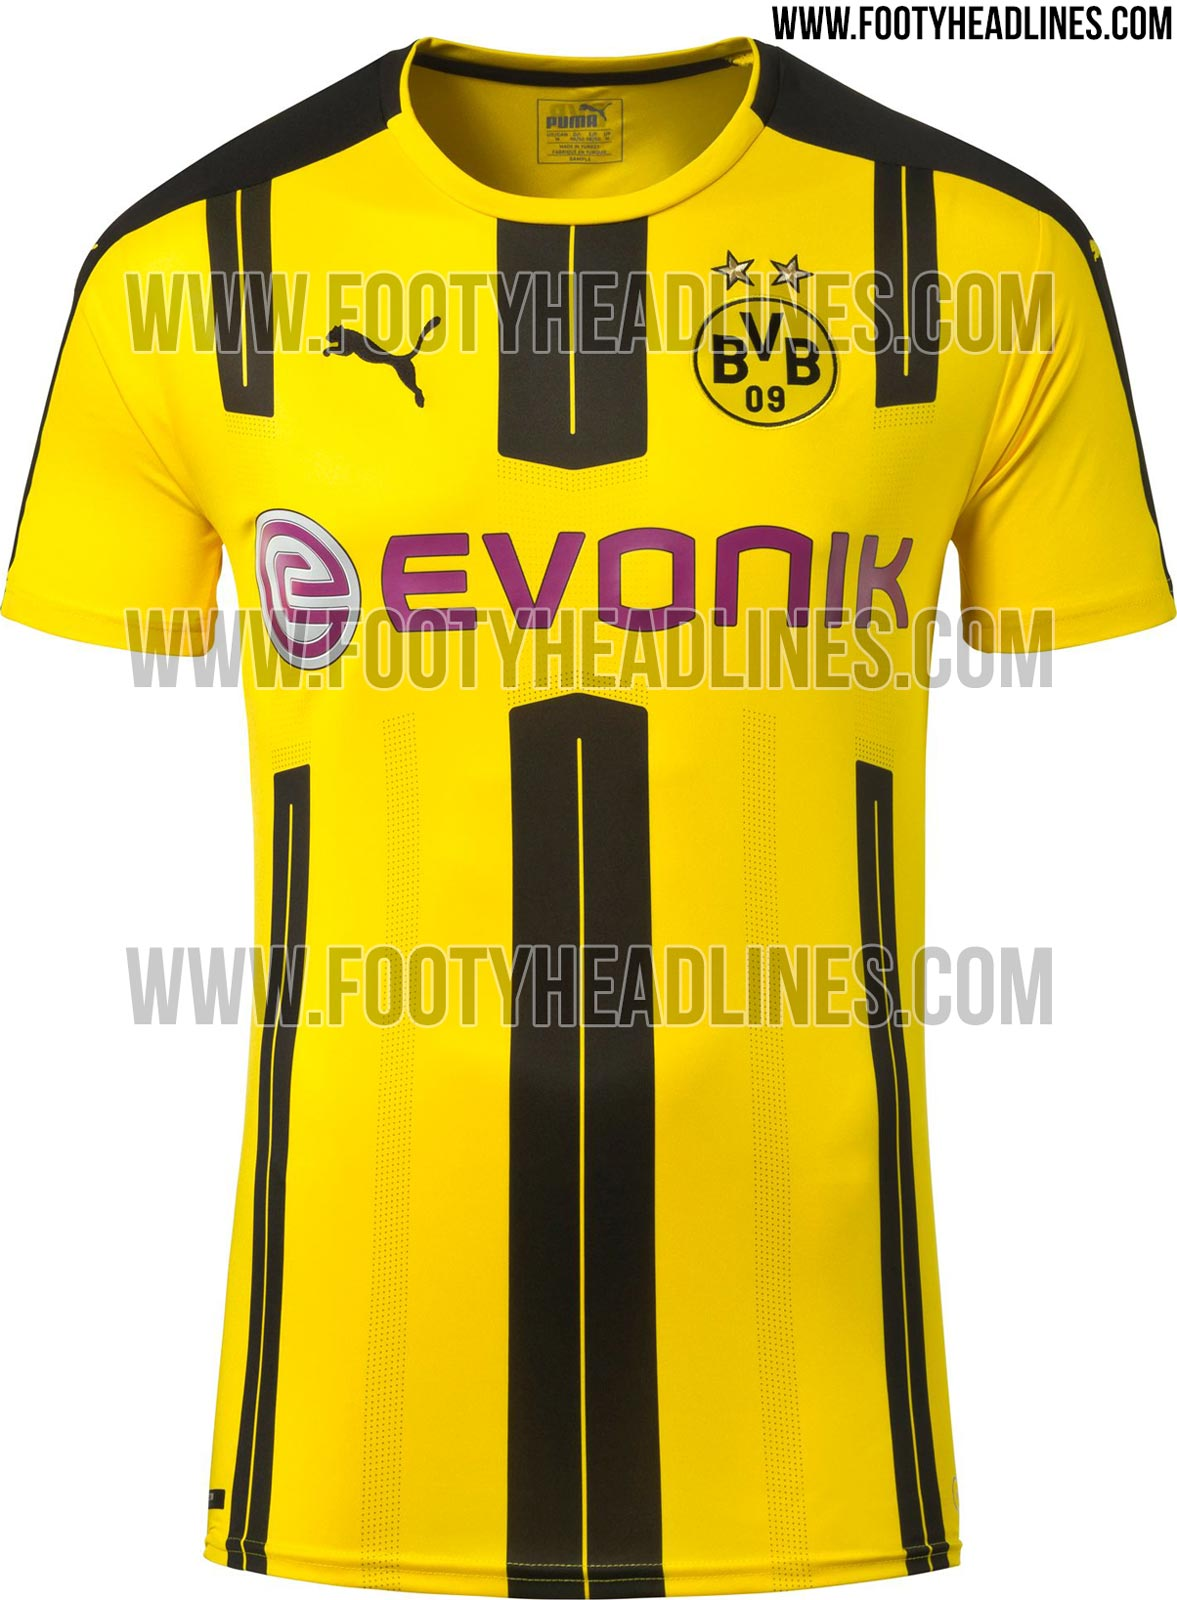 borussia dortmund 16 17 heimtrikot ver ffentlicht nur. Black Bedroom Furniture Sets. Home Design Ideas